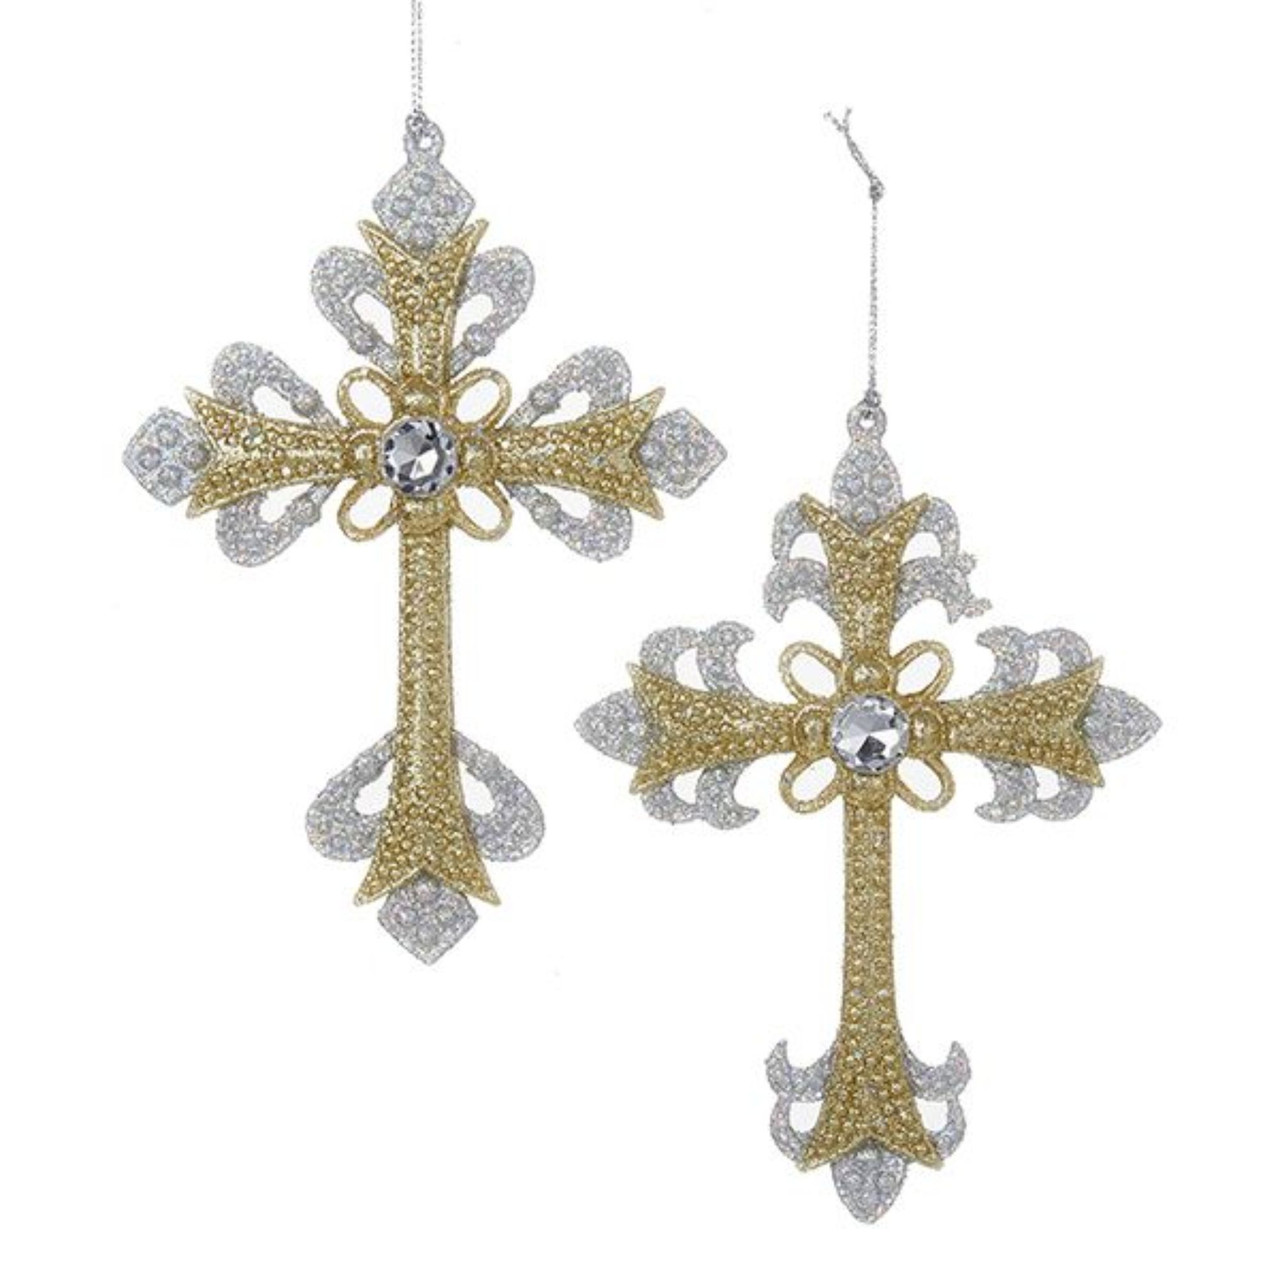 24 gold and silver glittered cross religious christmas ornaments 575 28191636